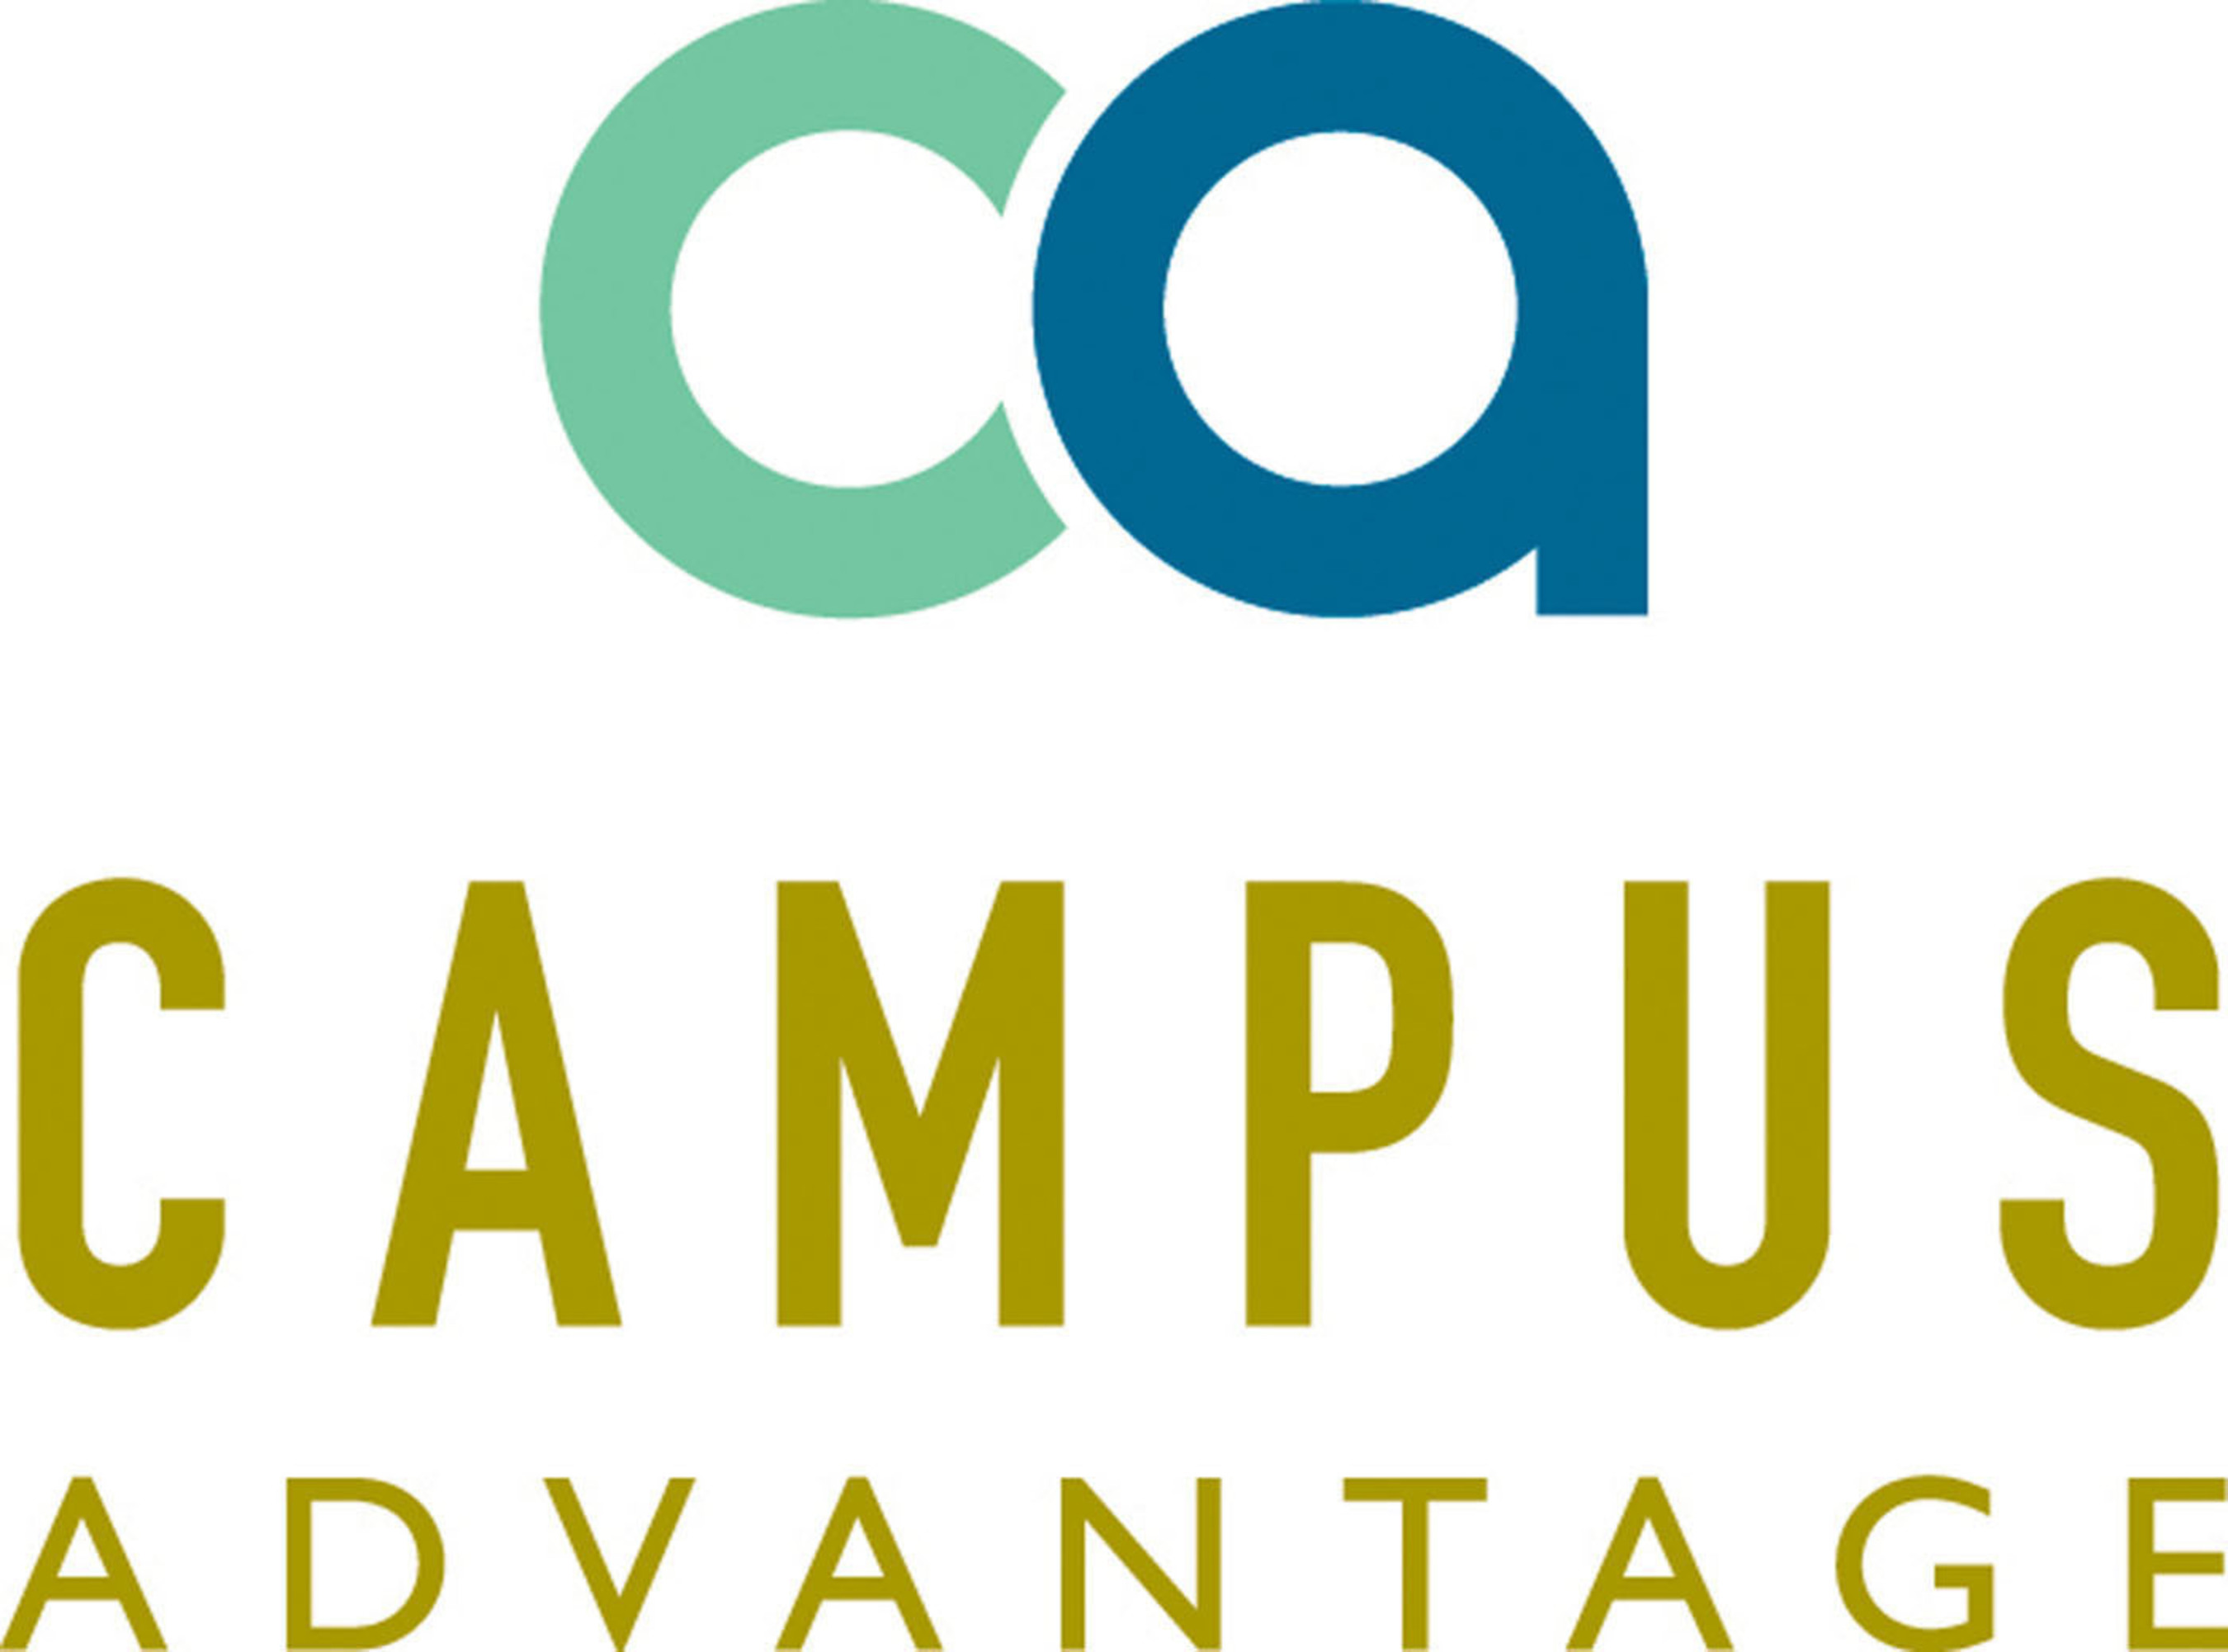 Campus Advantage, a leading student housing and higher education services company. (PRNewsFoto/Campus Advantage) (PRNewsFoto/)